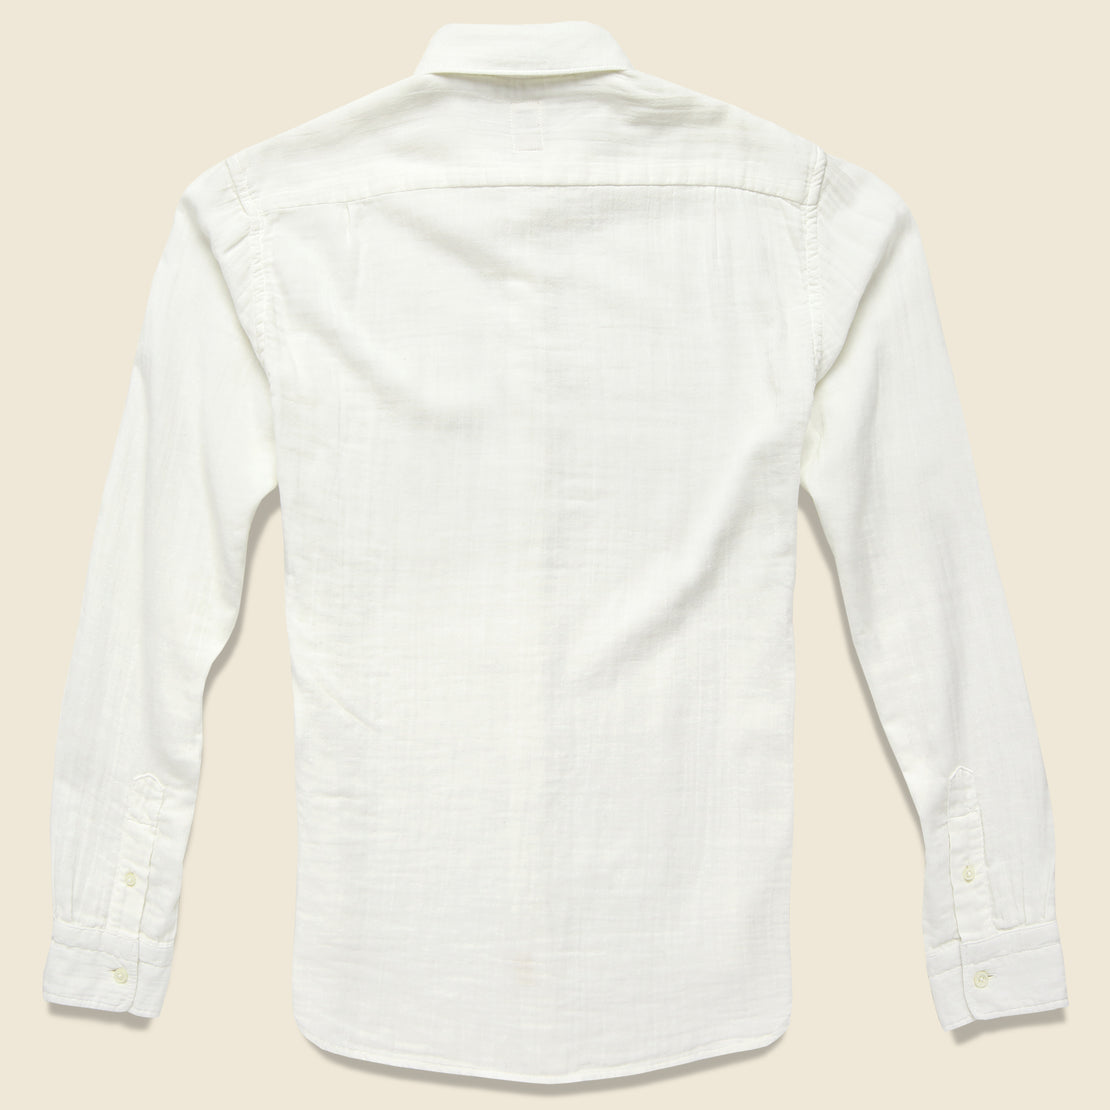 Vintage Double Gauze Shirt - White